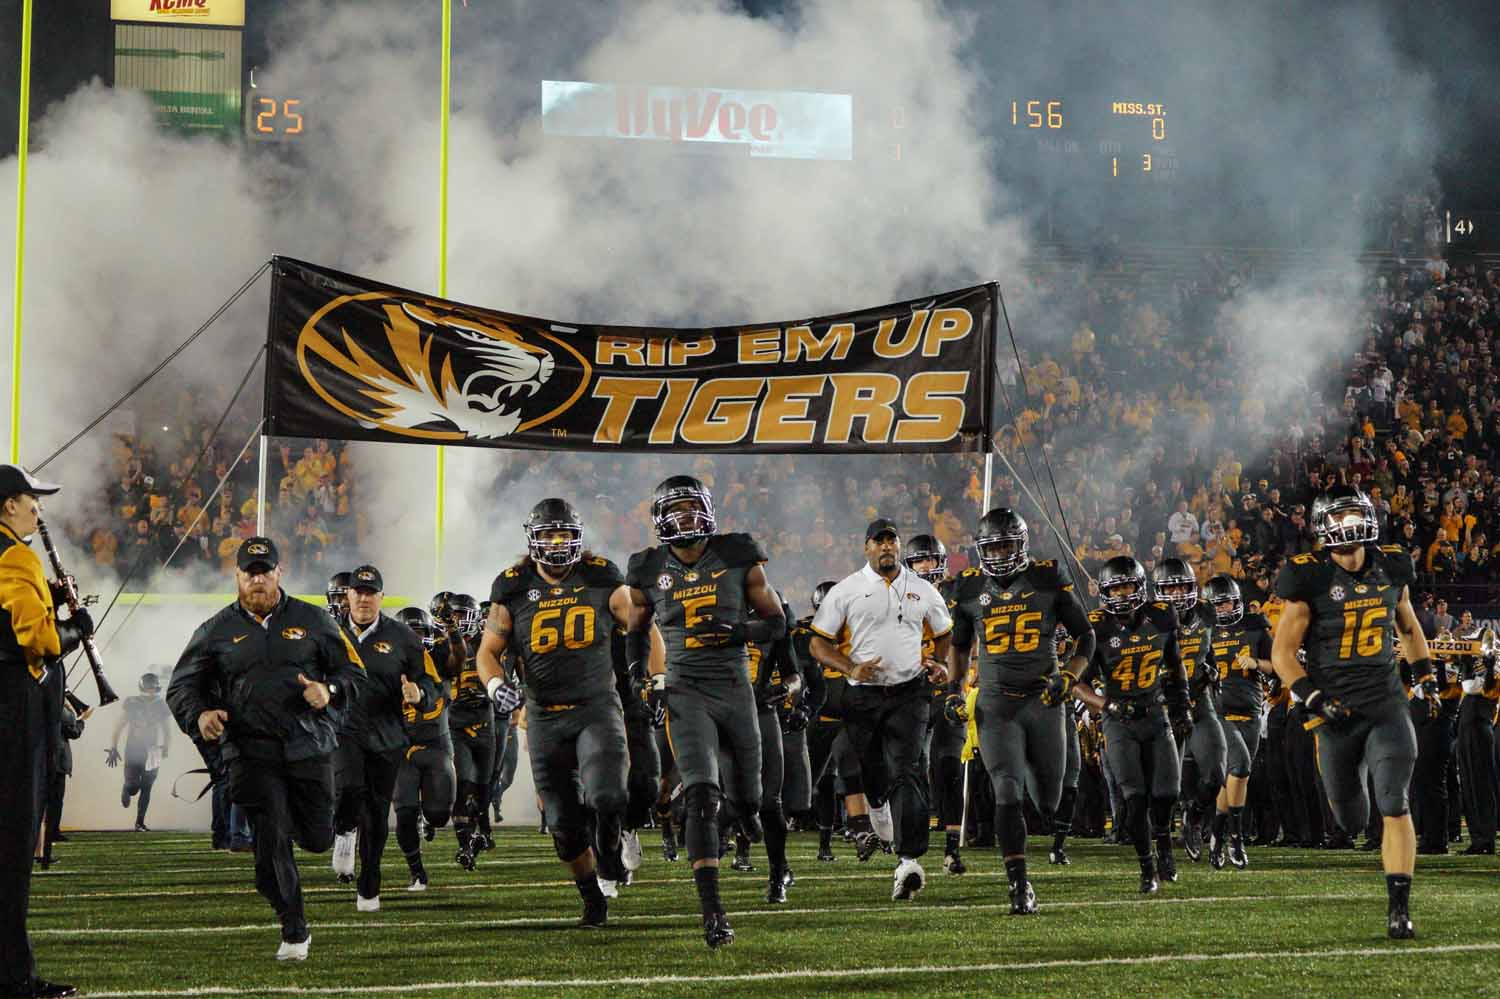 The Mizzou Tigers rush onto the field with thousands of fans cheering. Photo by Allison Collins.